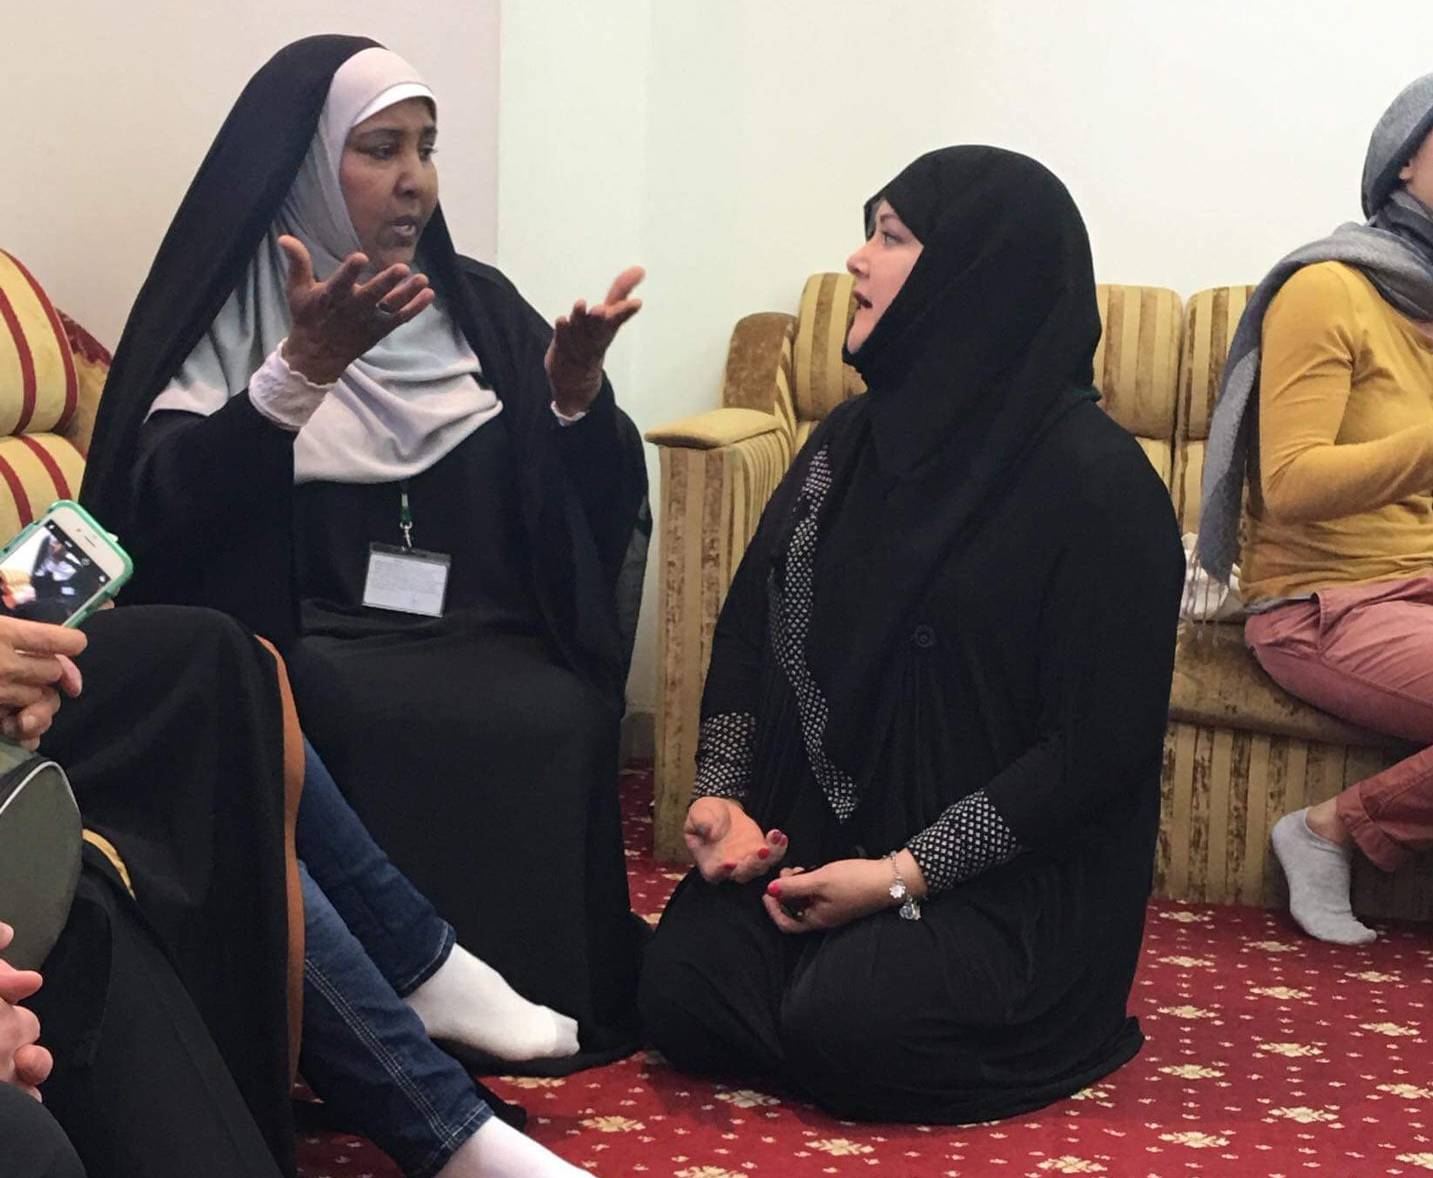 UHCL student blogs about 'rewarding experience' on Oman study trip